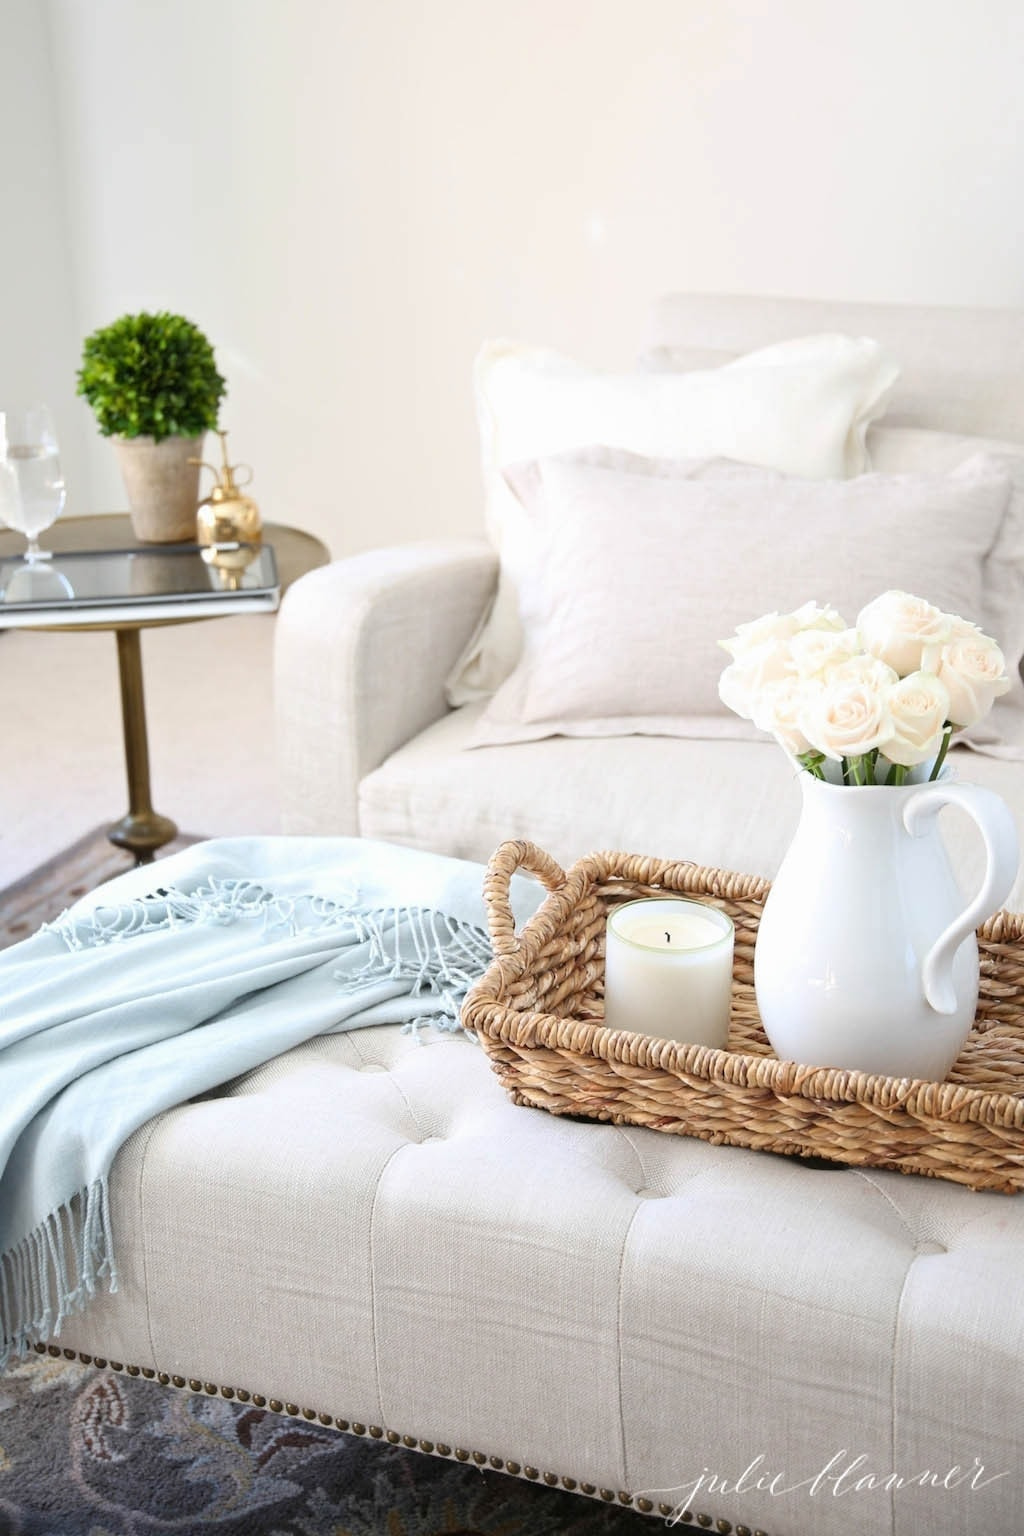 9 simple ways to refresh your home for spring